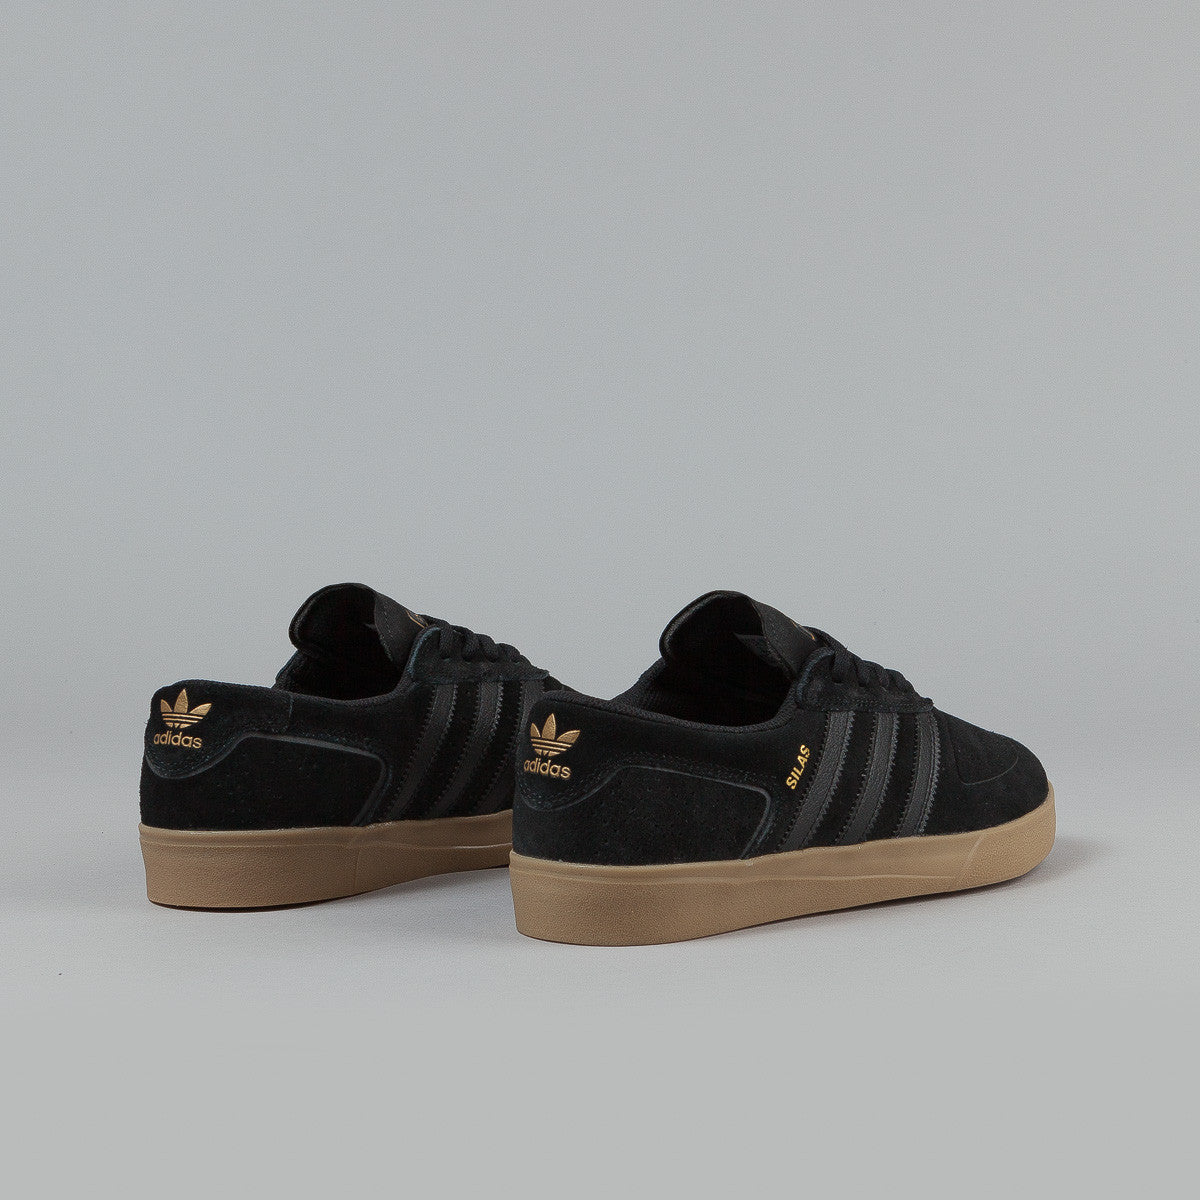 Adidas Silas Vulc ADV Shoes - Core Black / Core Black / Gold Metallic